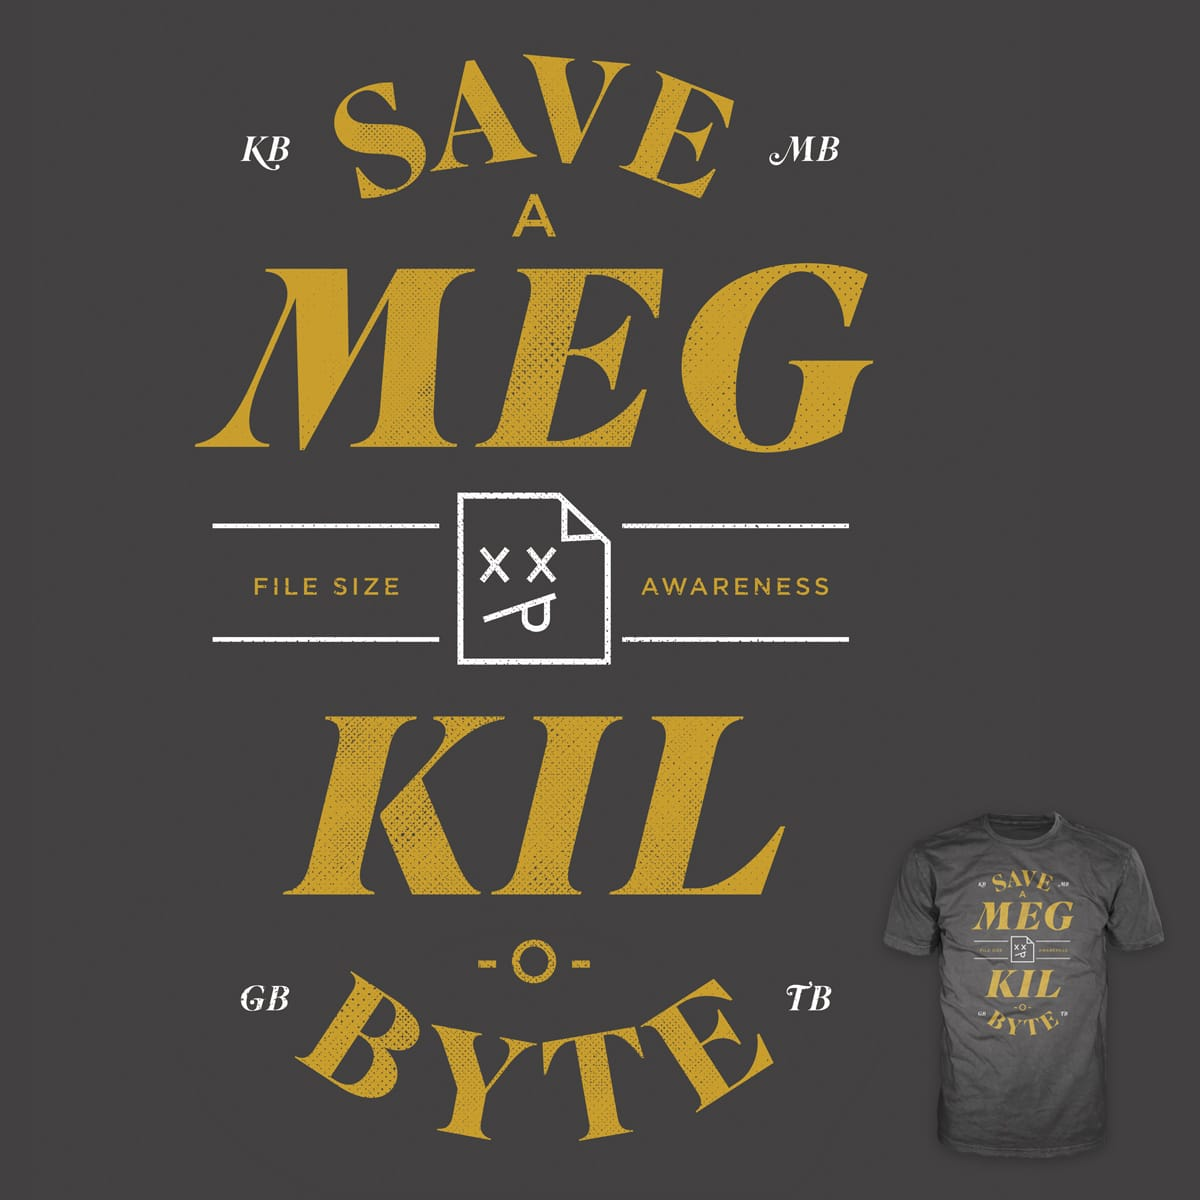 File Size Awareness by campkatie on Threadless